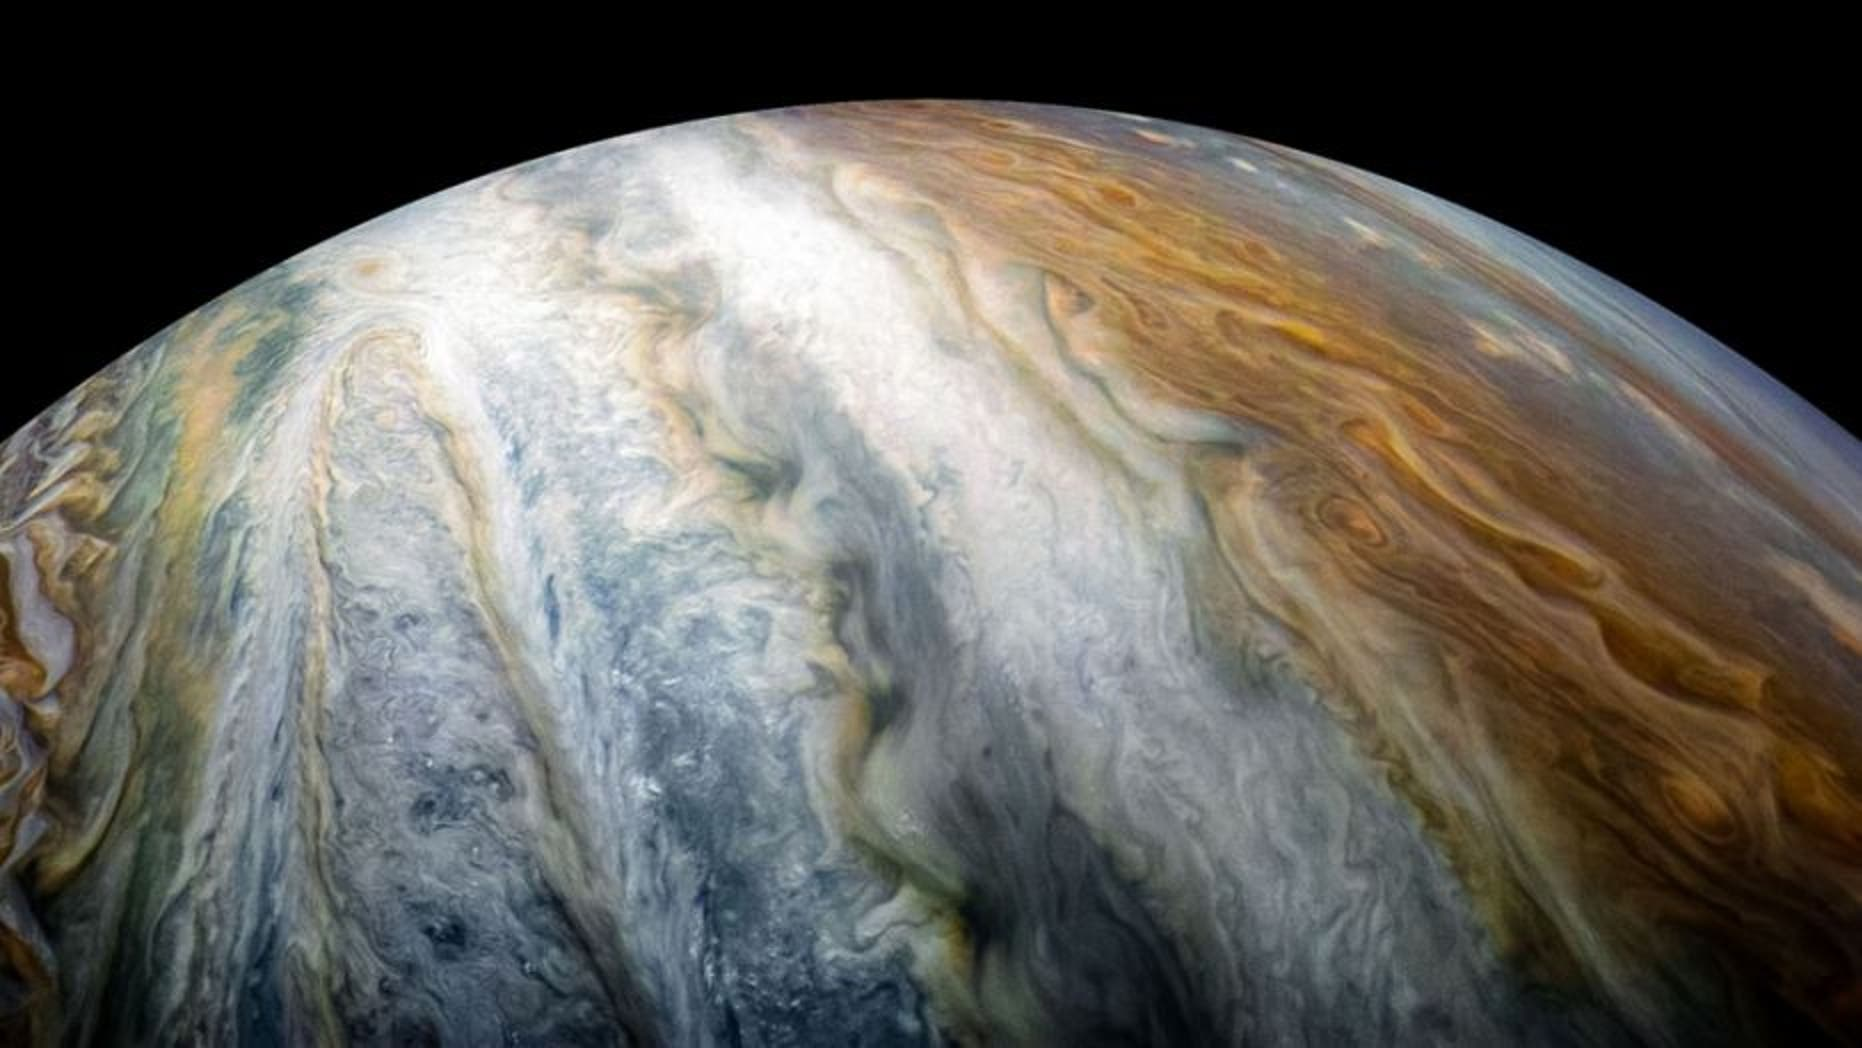 Planet Jupiter is going to delight stargazers with a rare show this week when it connects two of the brightest stars in the solar system: Arcturus and Spica.